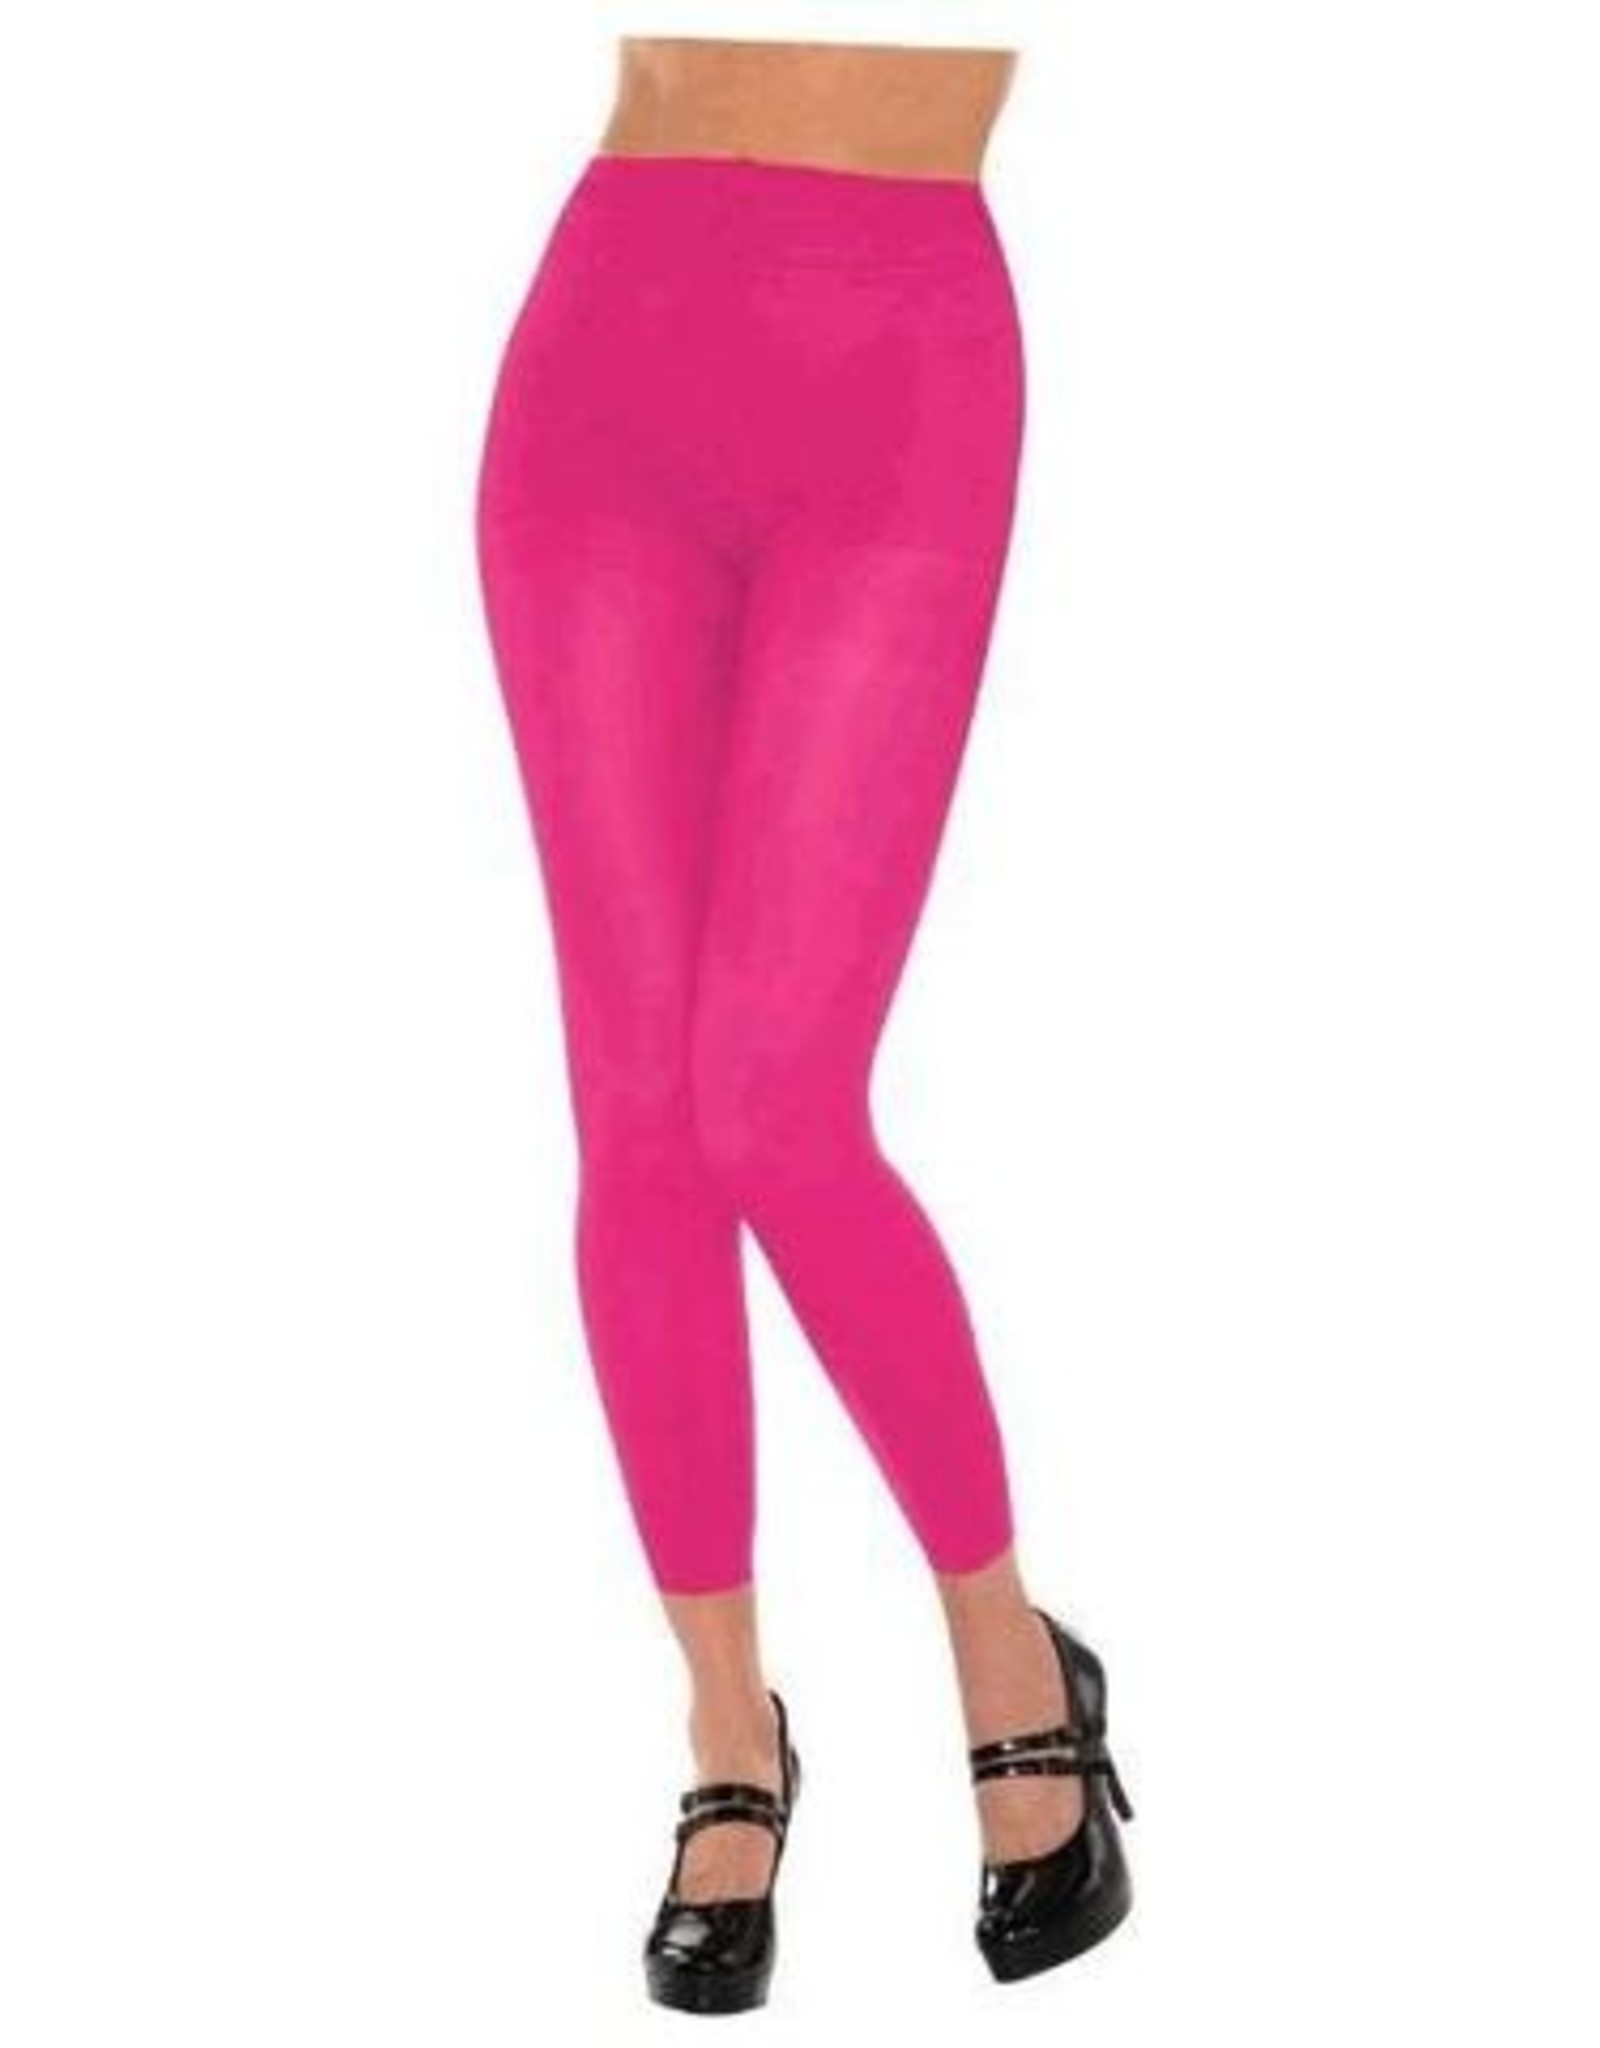 Footless Pink Tights Standard Adult